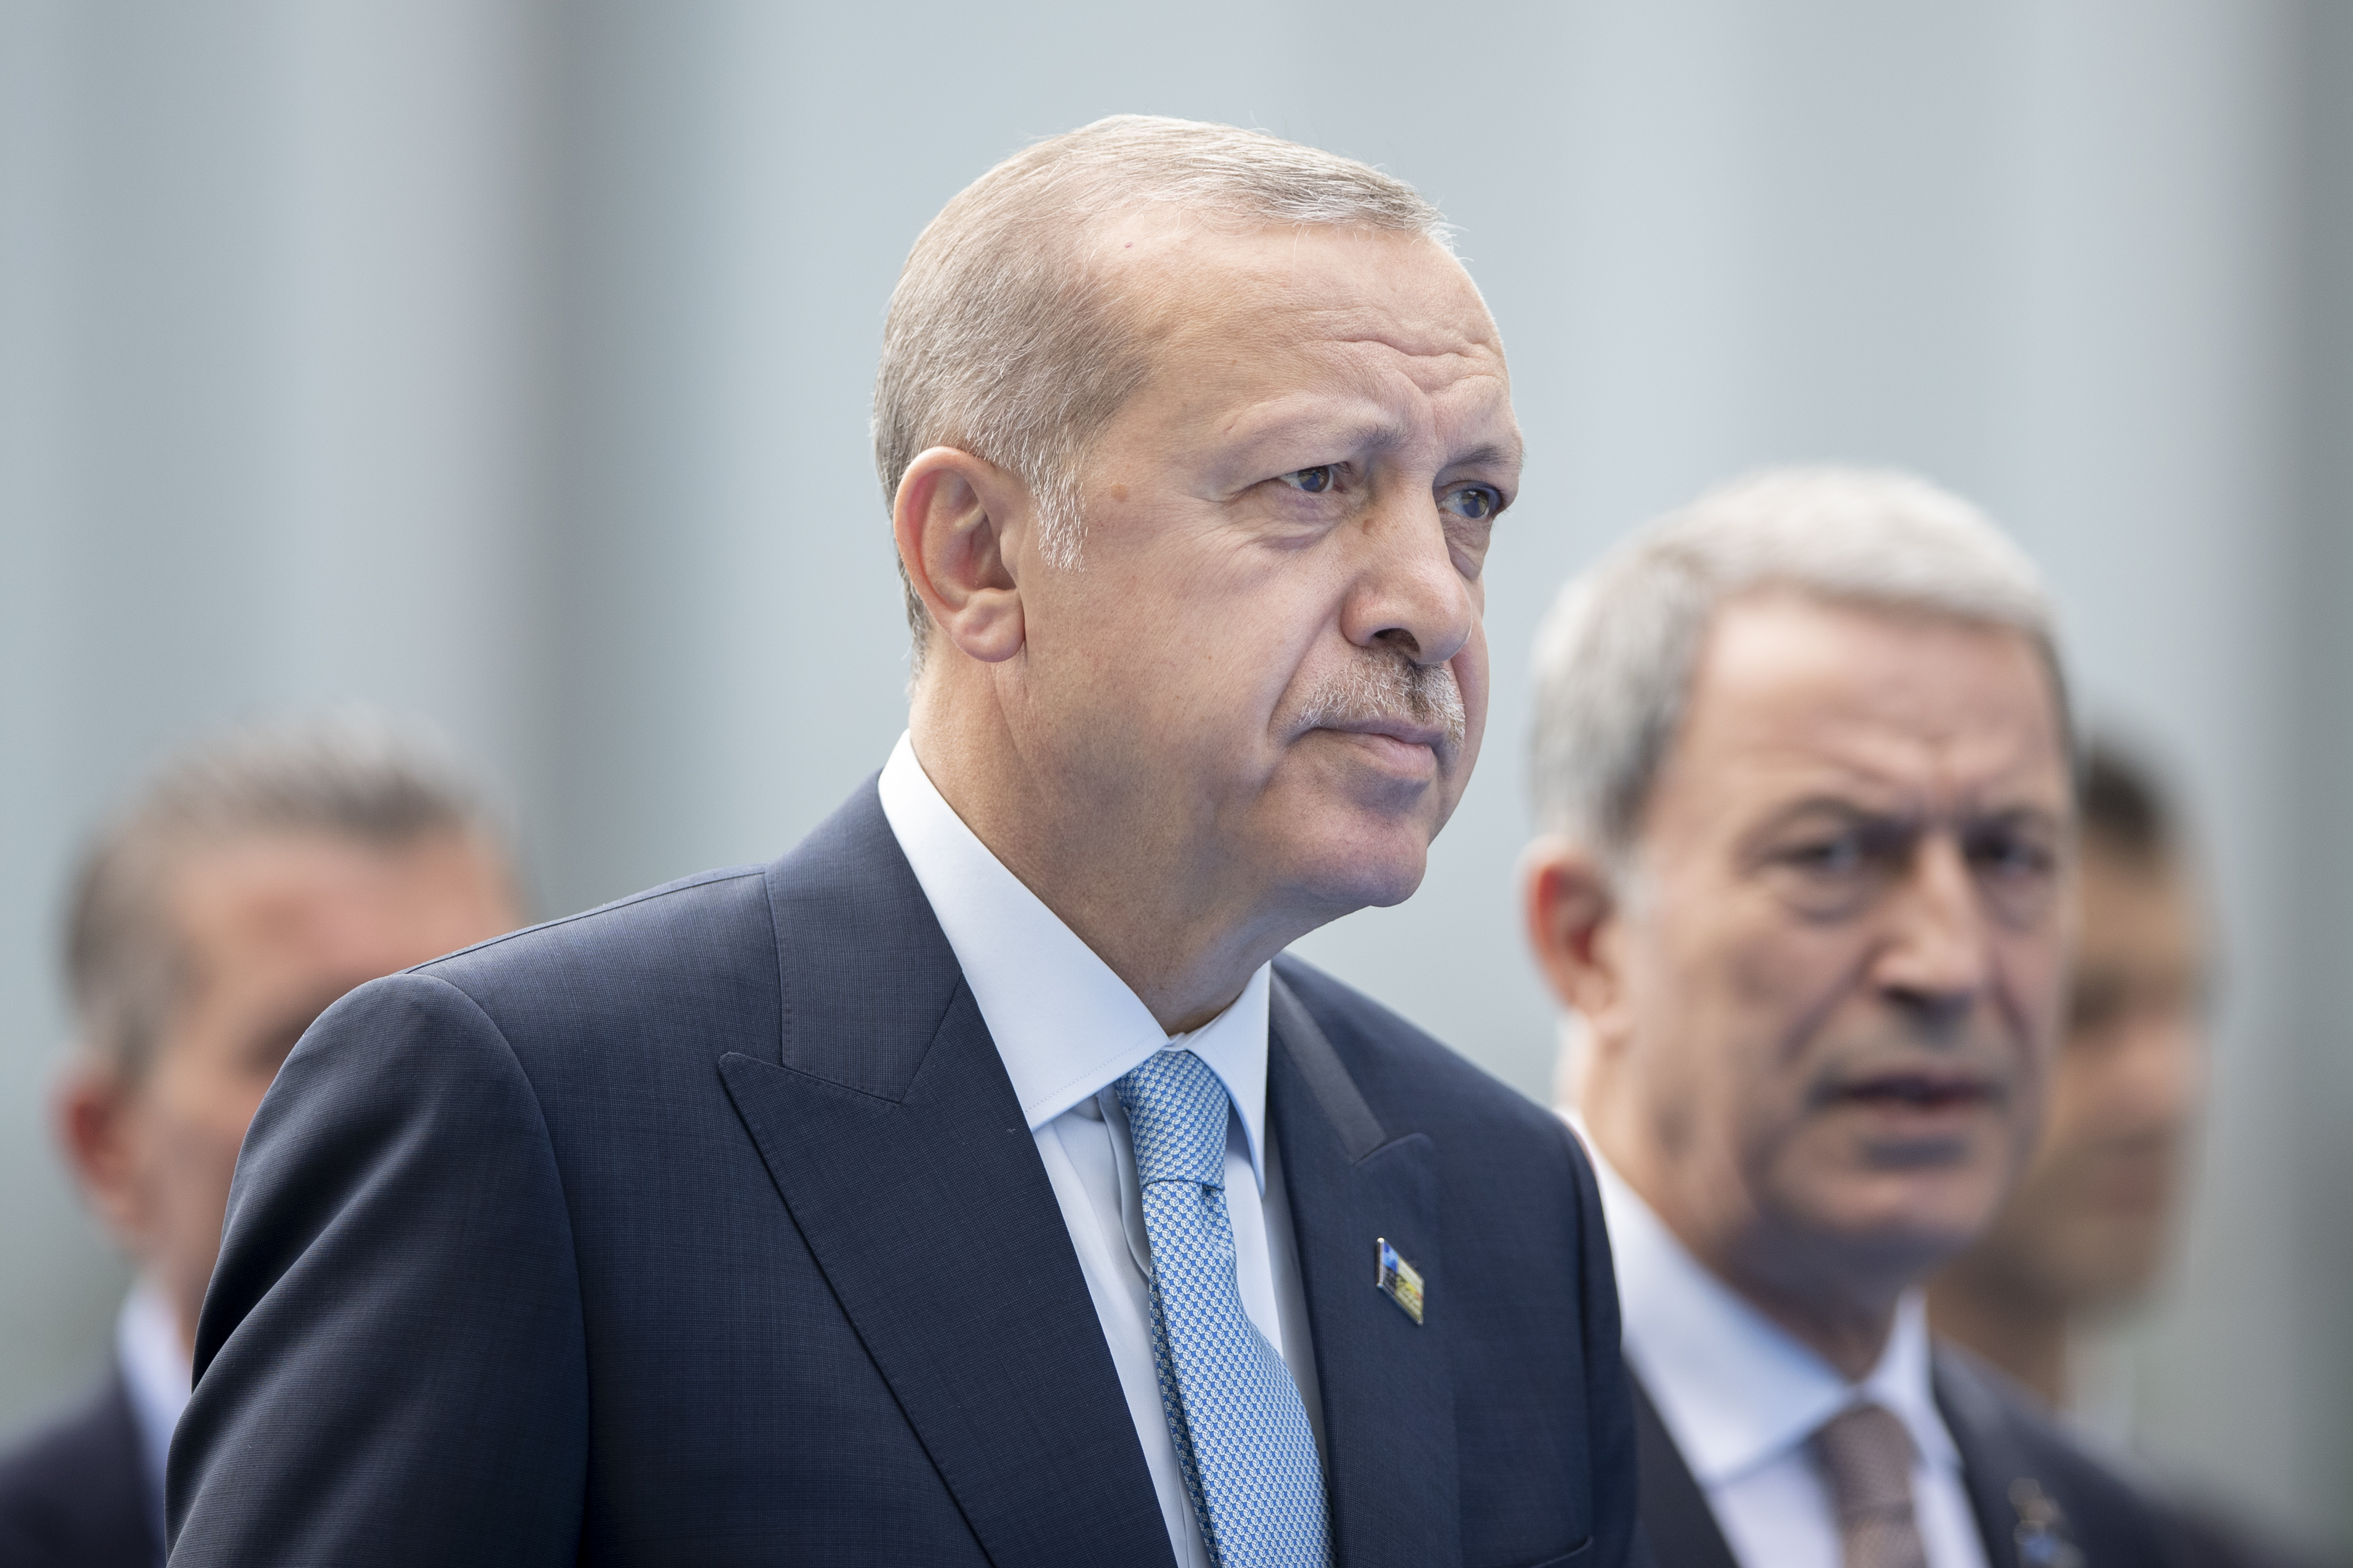 Turkish President Recep Tayyip Erdogan arrives at the 2018 NATO Summit at NATO headquarters on July 12, 2018 in Brussels, Belgium.